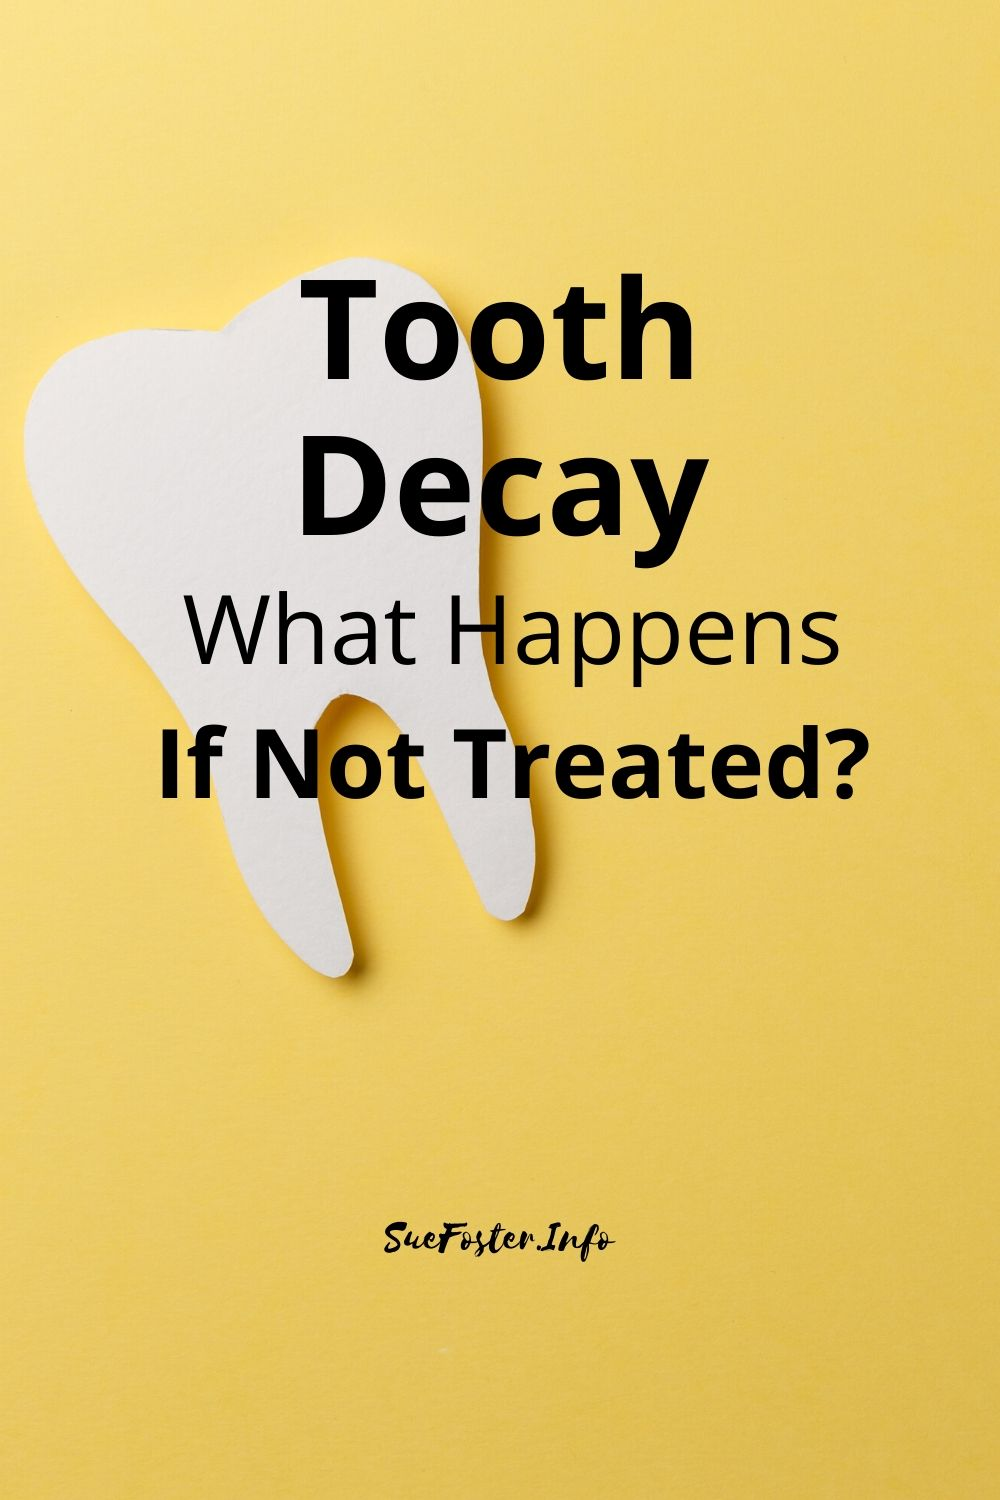 Tooth Decay What Happens If Not Treated?